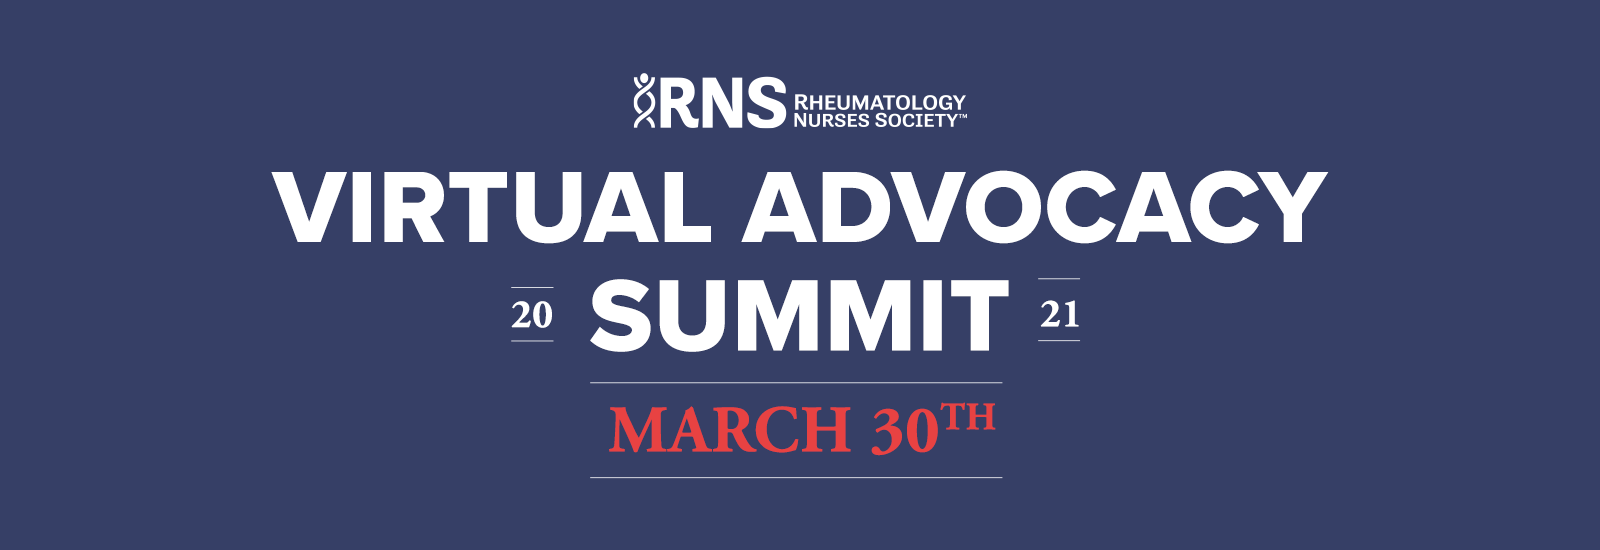 2021 RNS Virtual Advocacy Summit - March 30